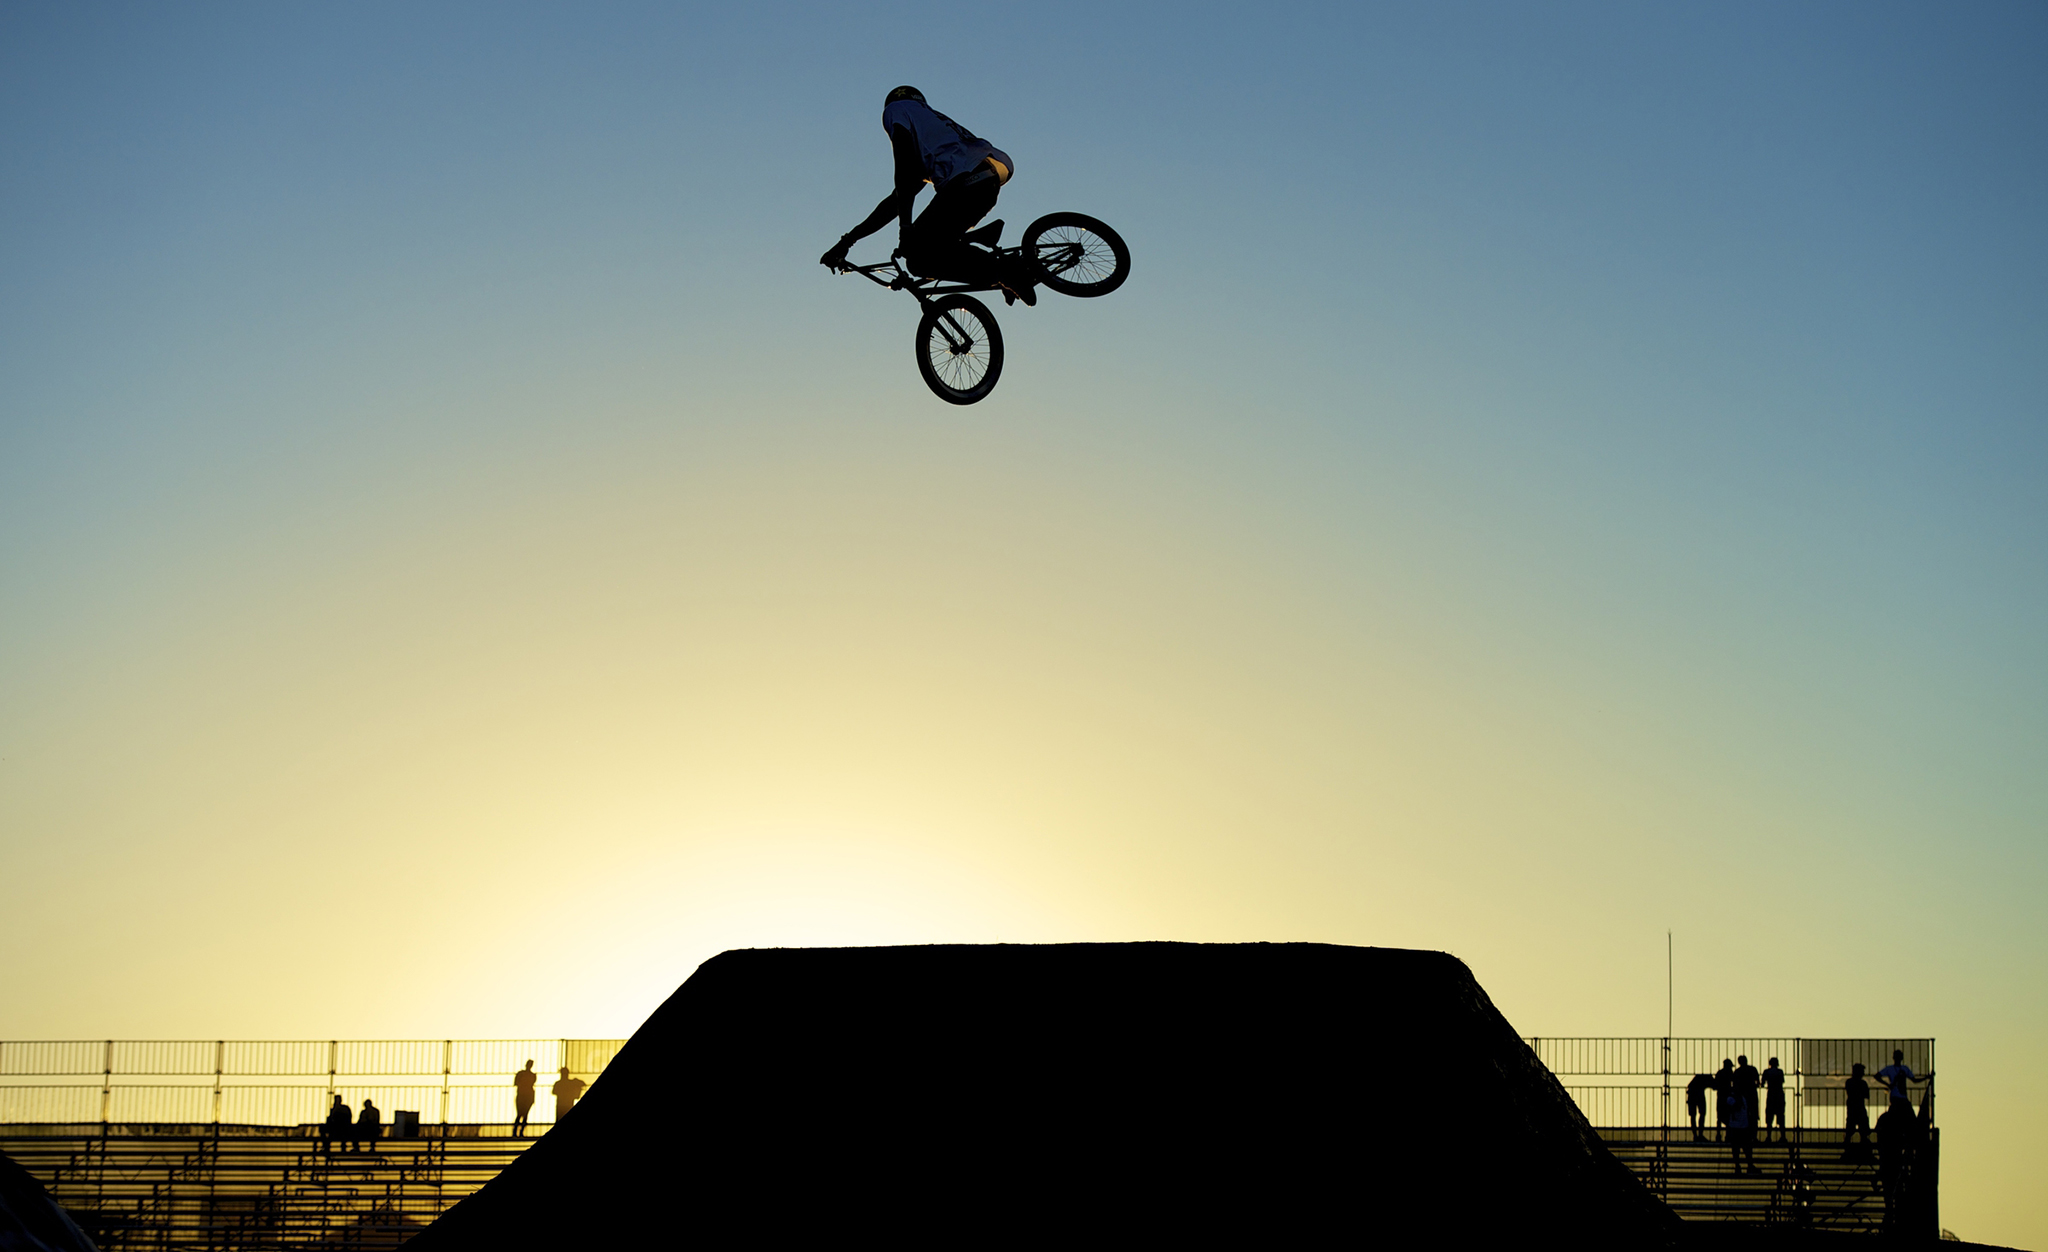 T.J. Ellis, XGames Foz do Iguau